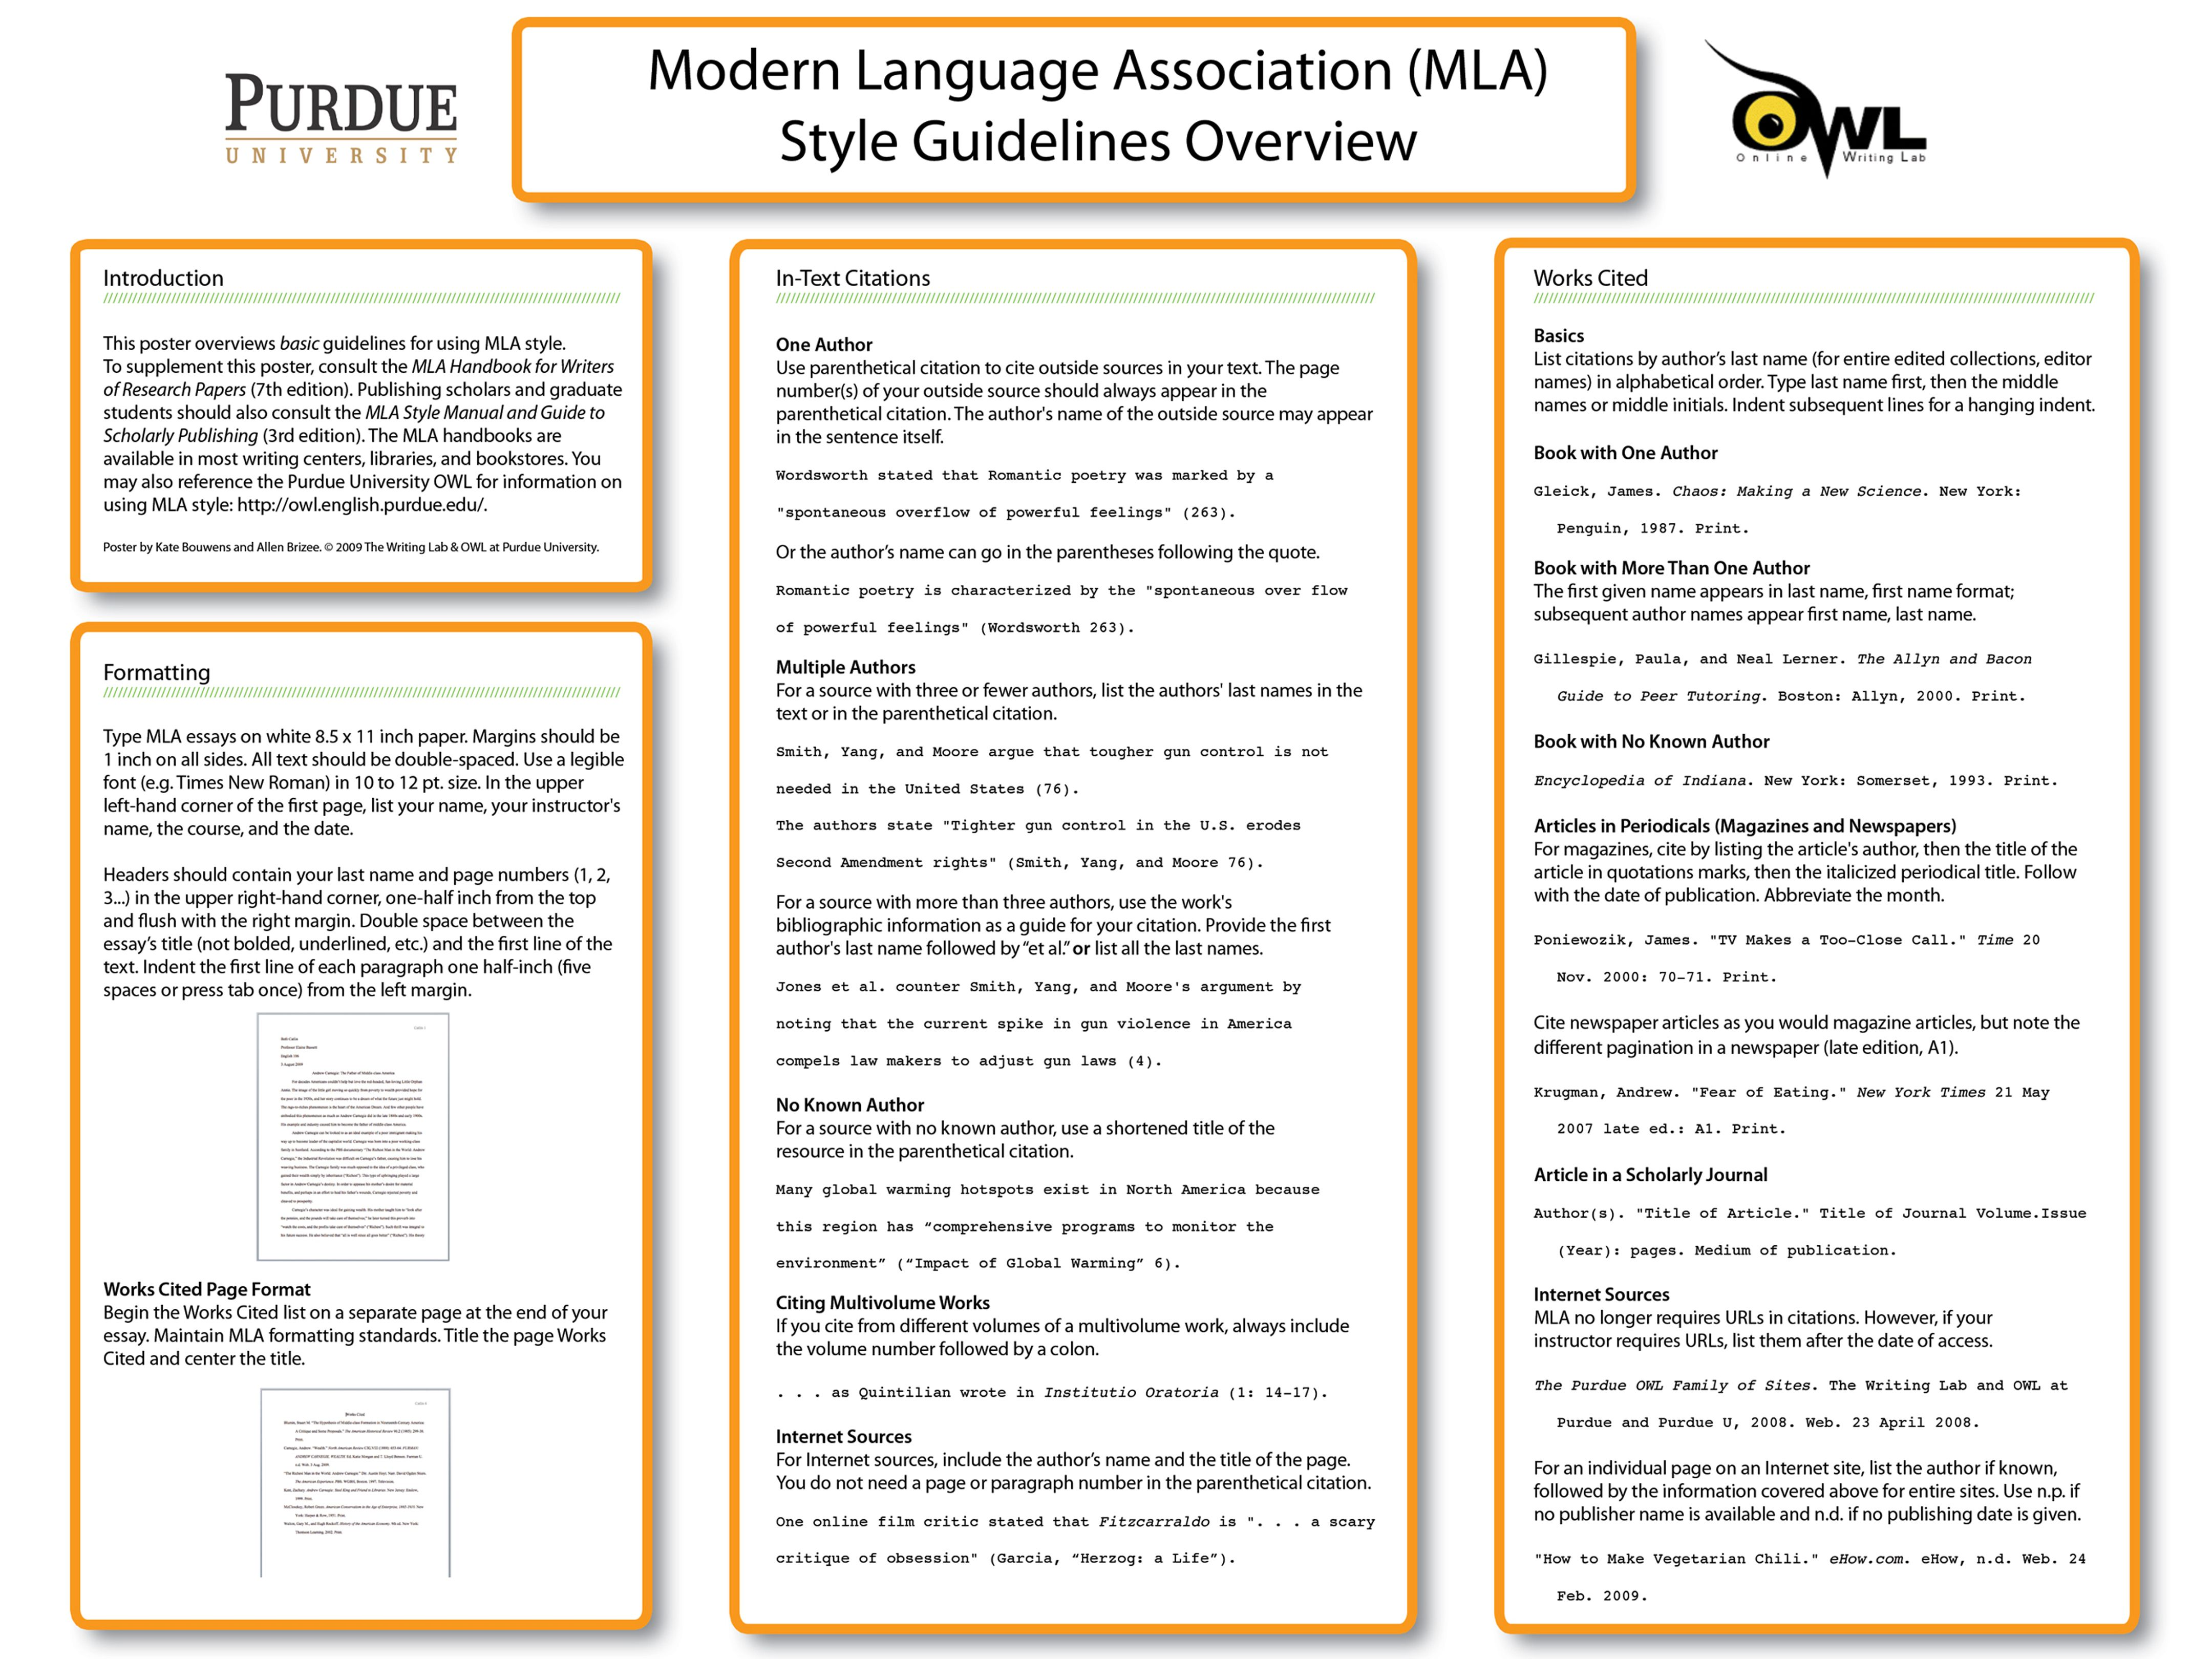 the purdue owl mla classroom poster teaching stuff 2014 owl online writing lab is one of my favourite academic resources i often have recourse to when working on research papers